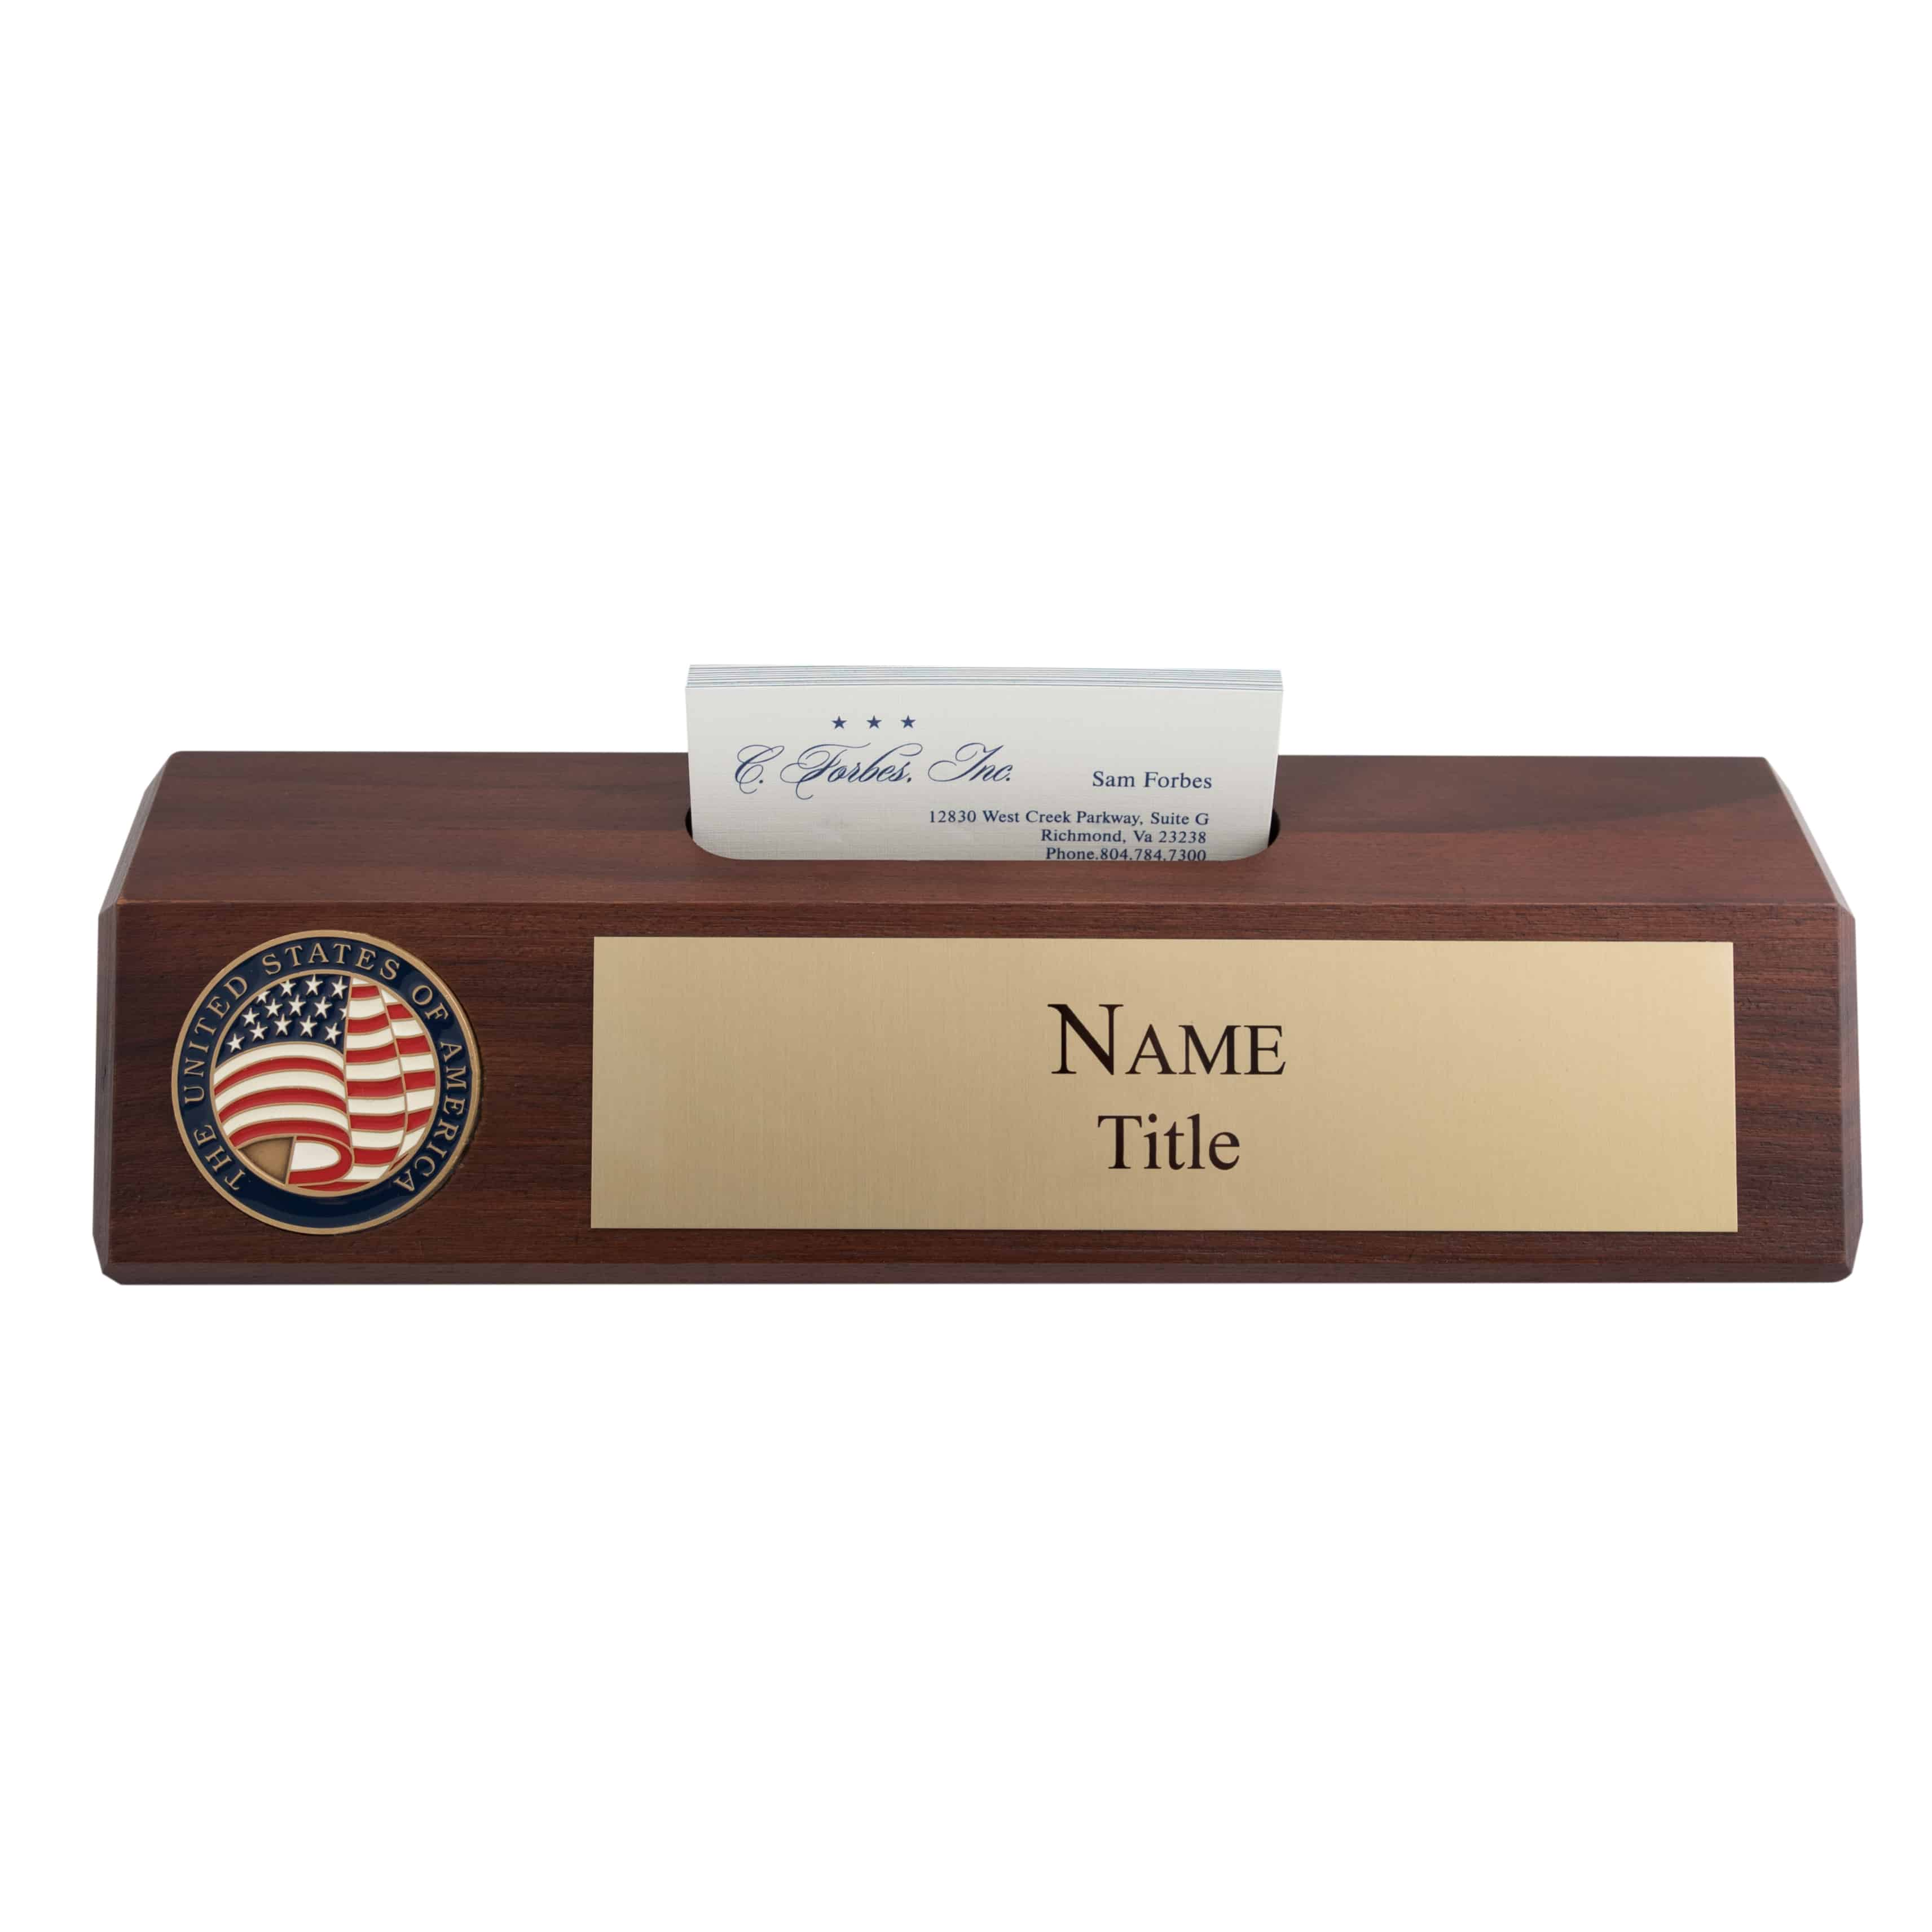 Nameplate with business card holder c forbes inc wooden name plate with business card holder brass colourmoves